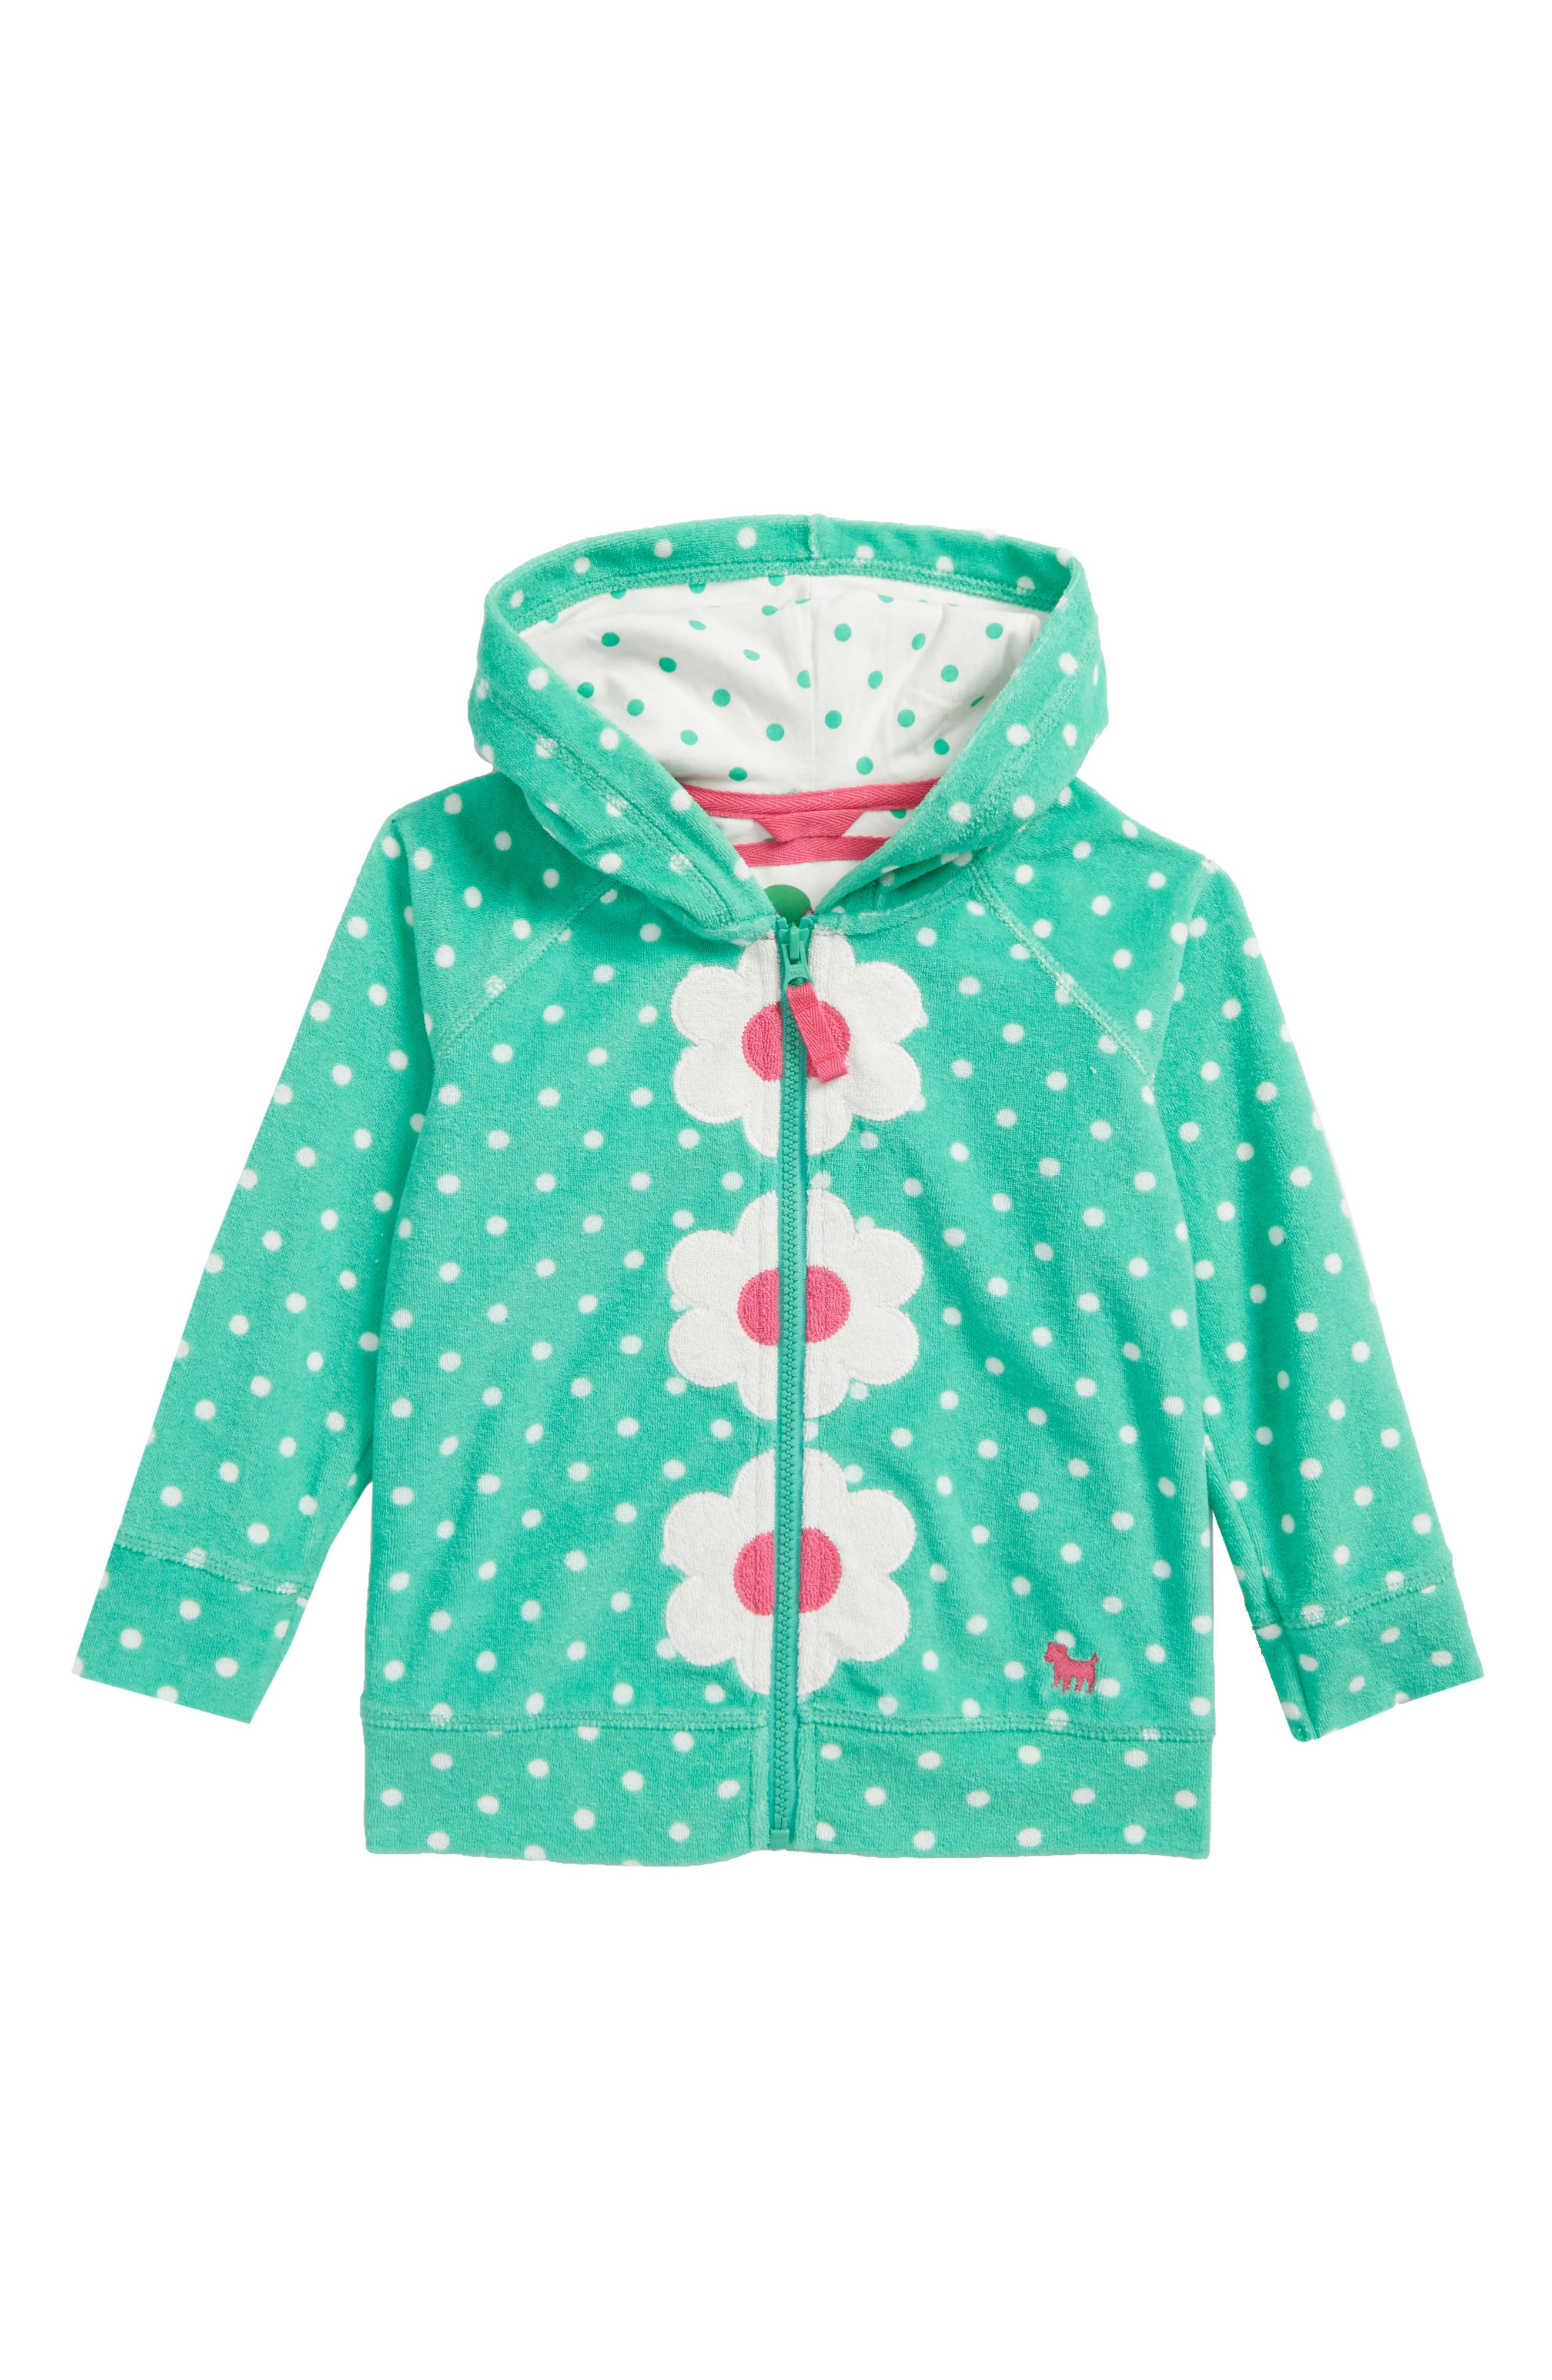 Toweling Hoodie,                         Main,                         color, Summer Green/ Ivory Spot